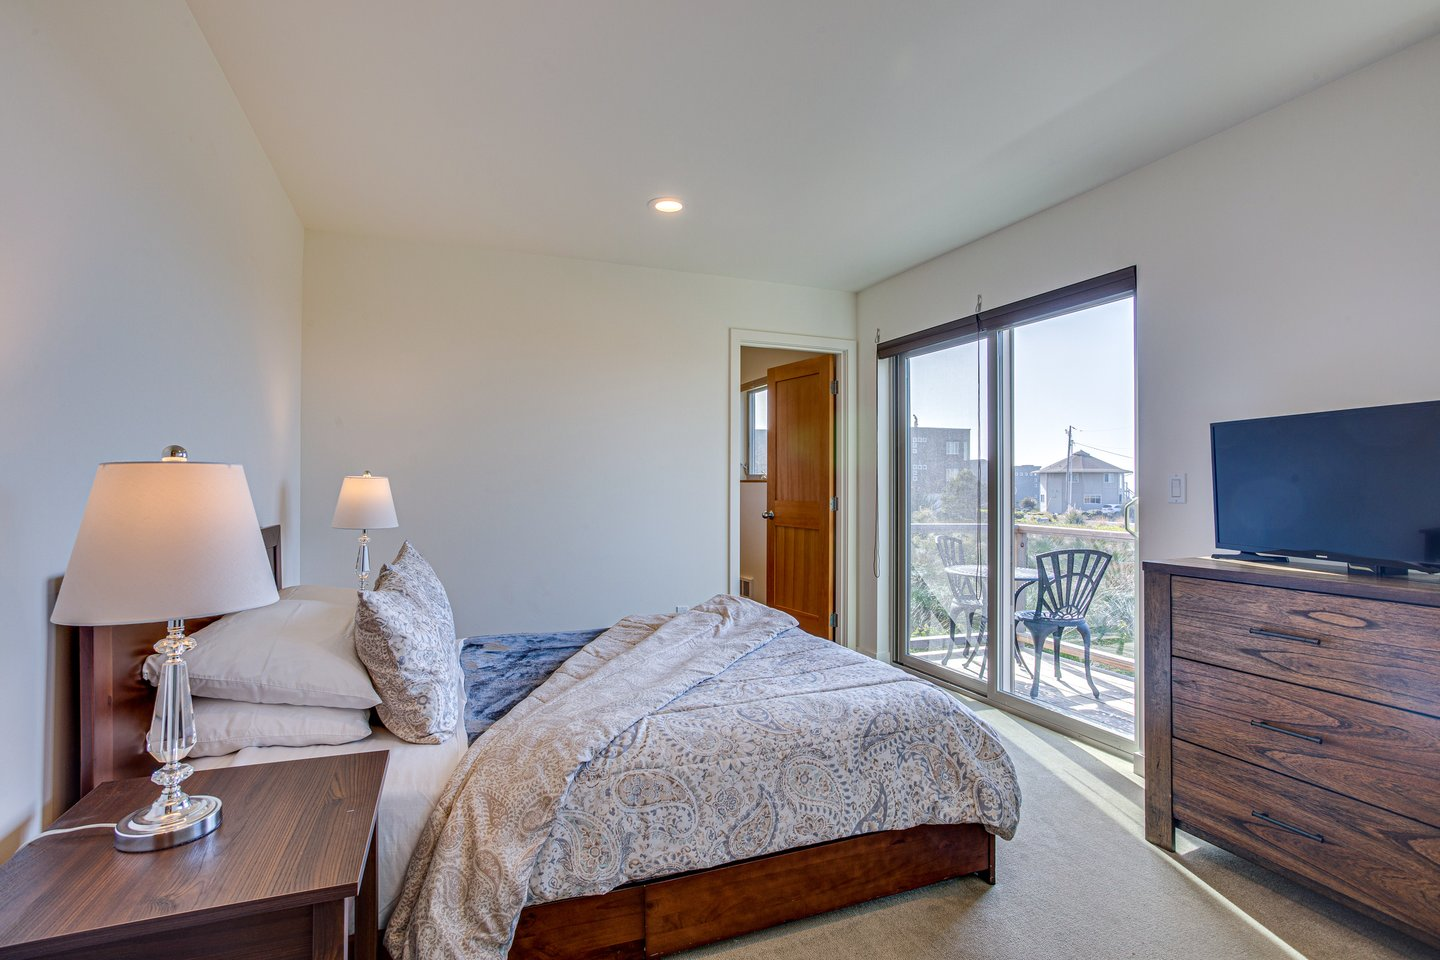 Cozy up in the queen bedroom with ocean views downstairs.